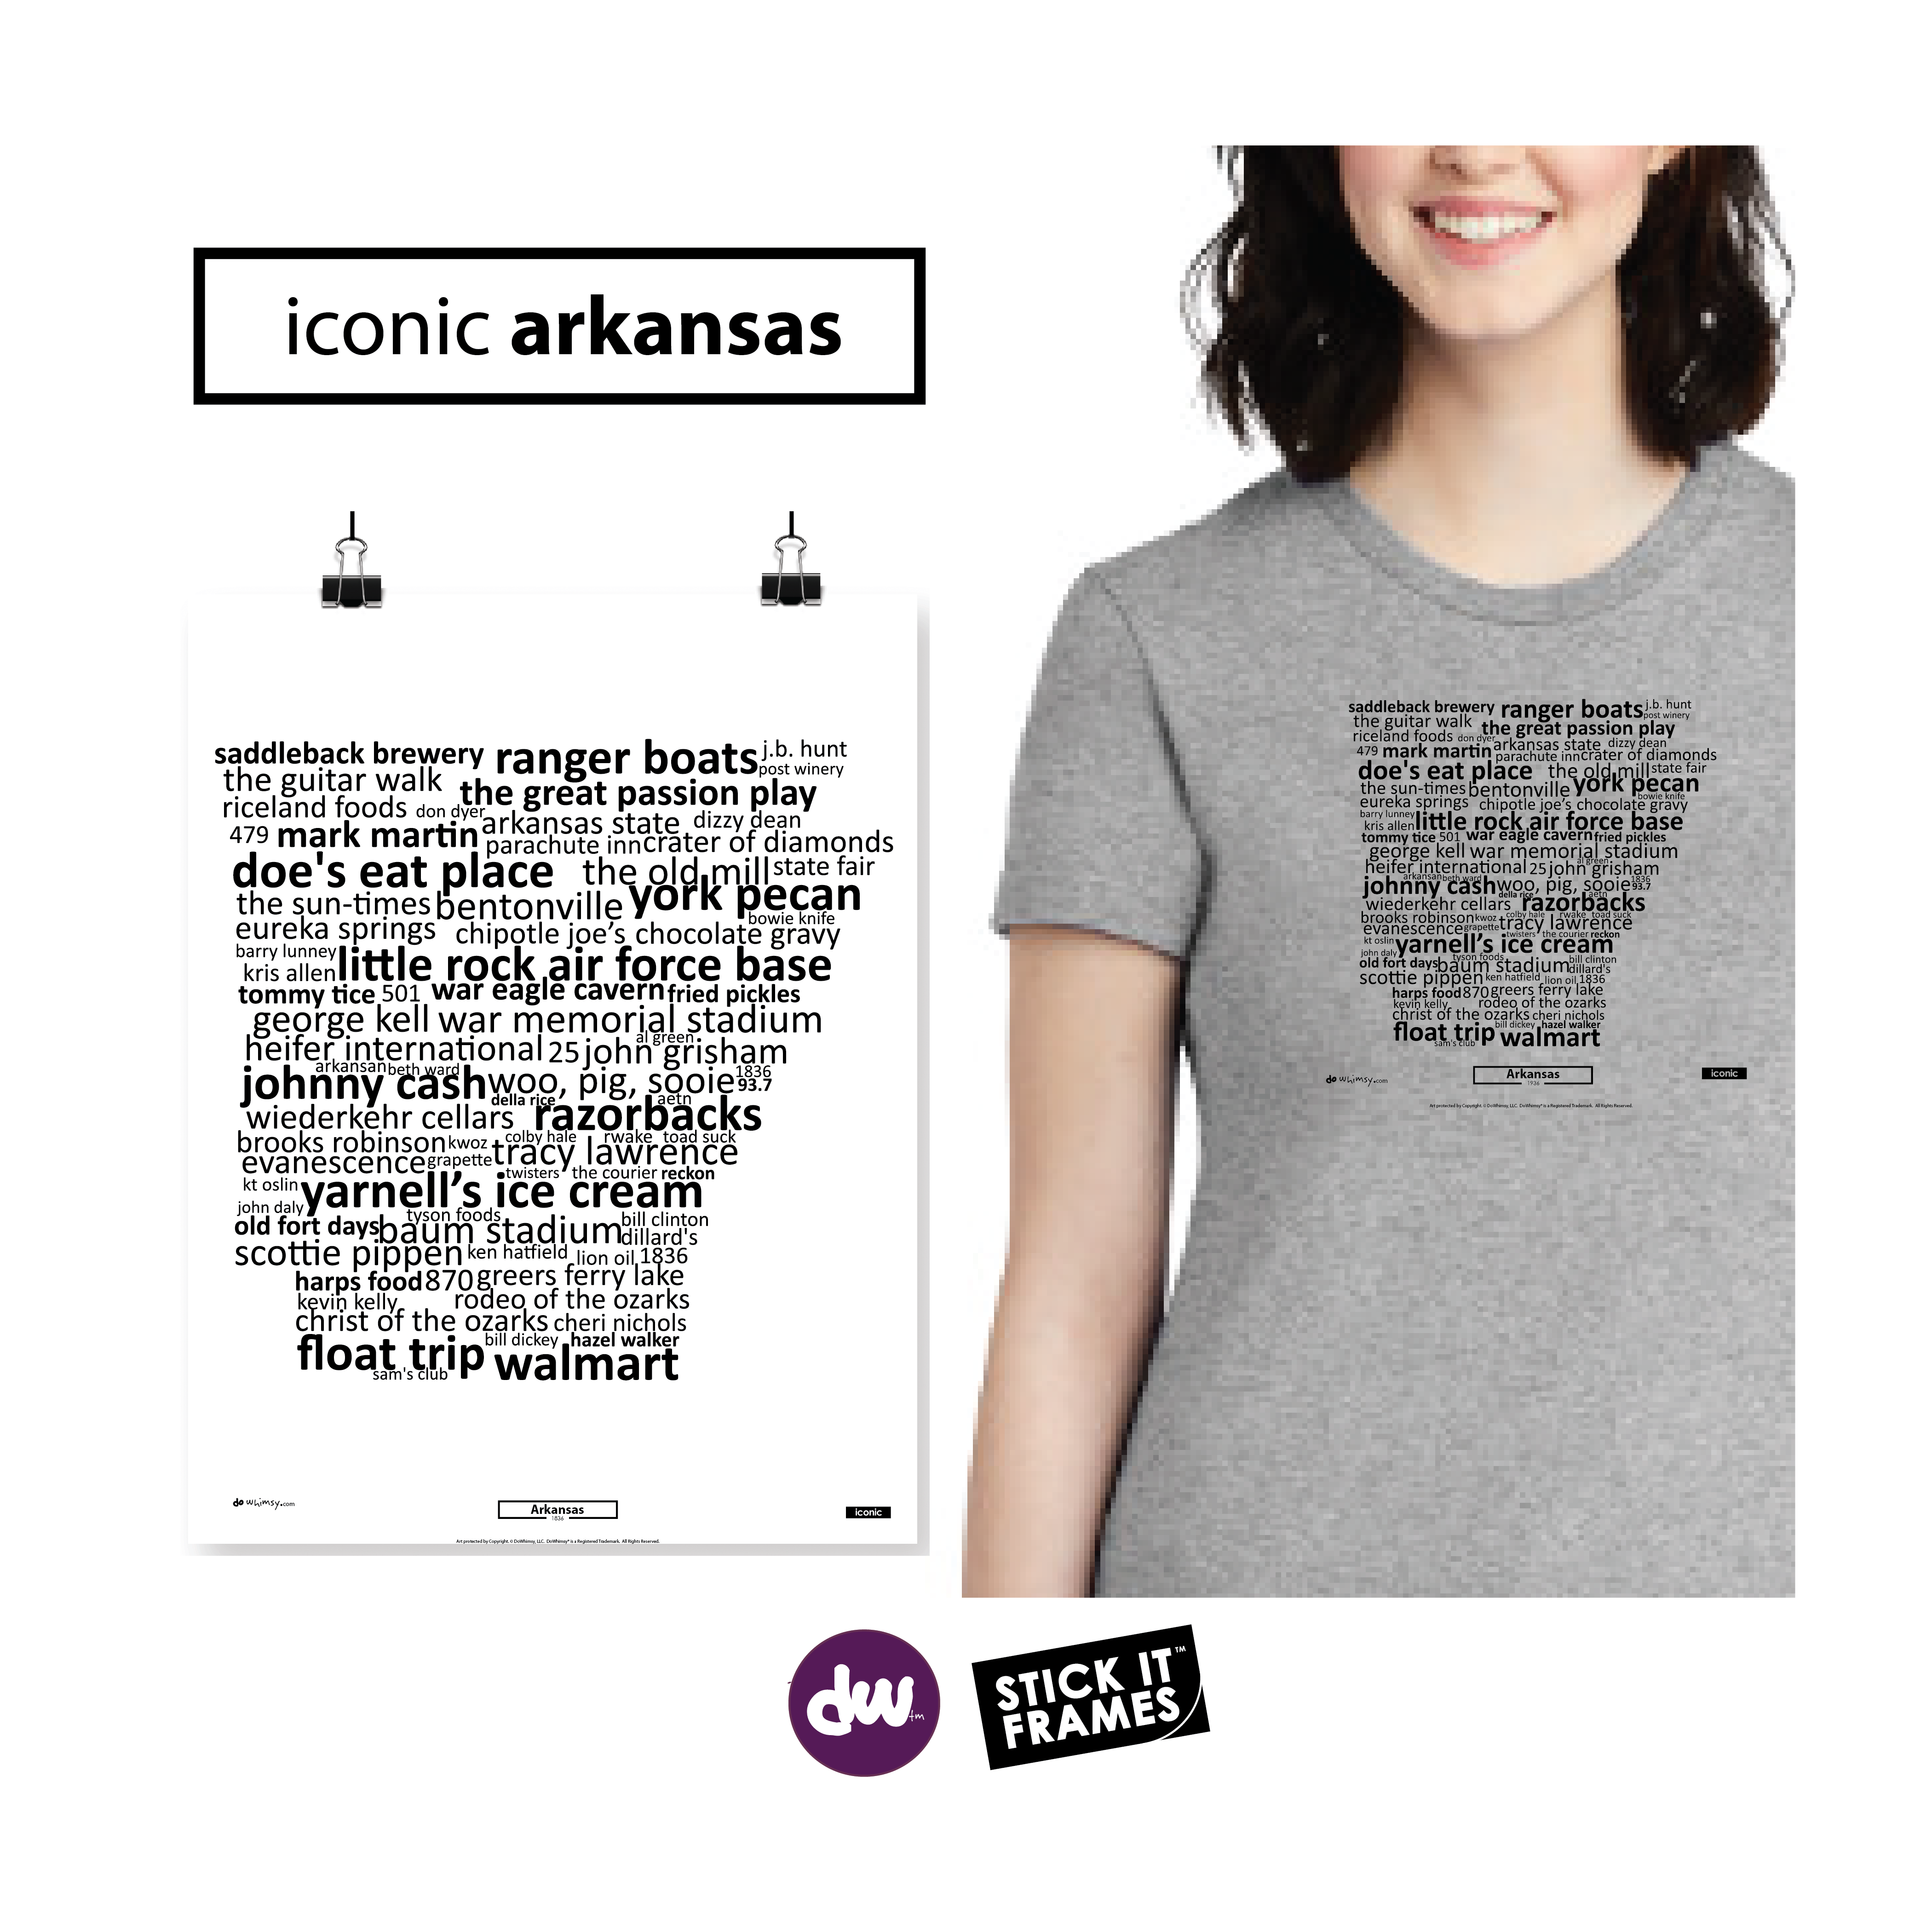 Iconic Arkansas - All Products (Shirt, Art, Frames (R))